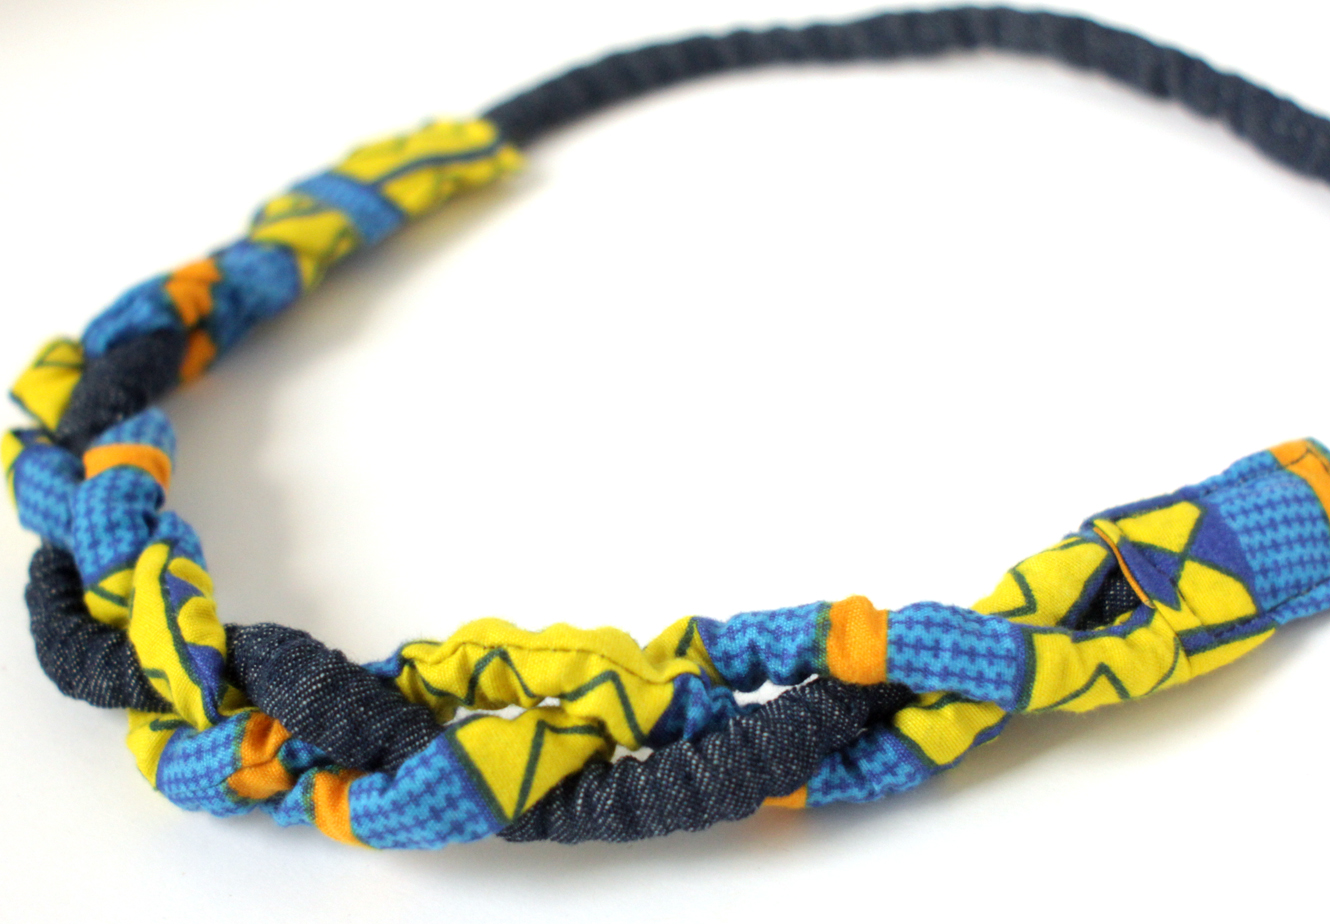 woven en stylish product beaded thread unusual necklace jewelry com fabric handmade madeheart textile